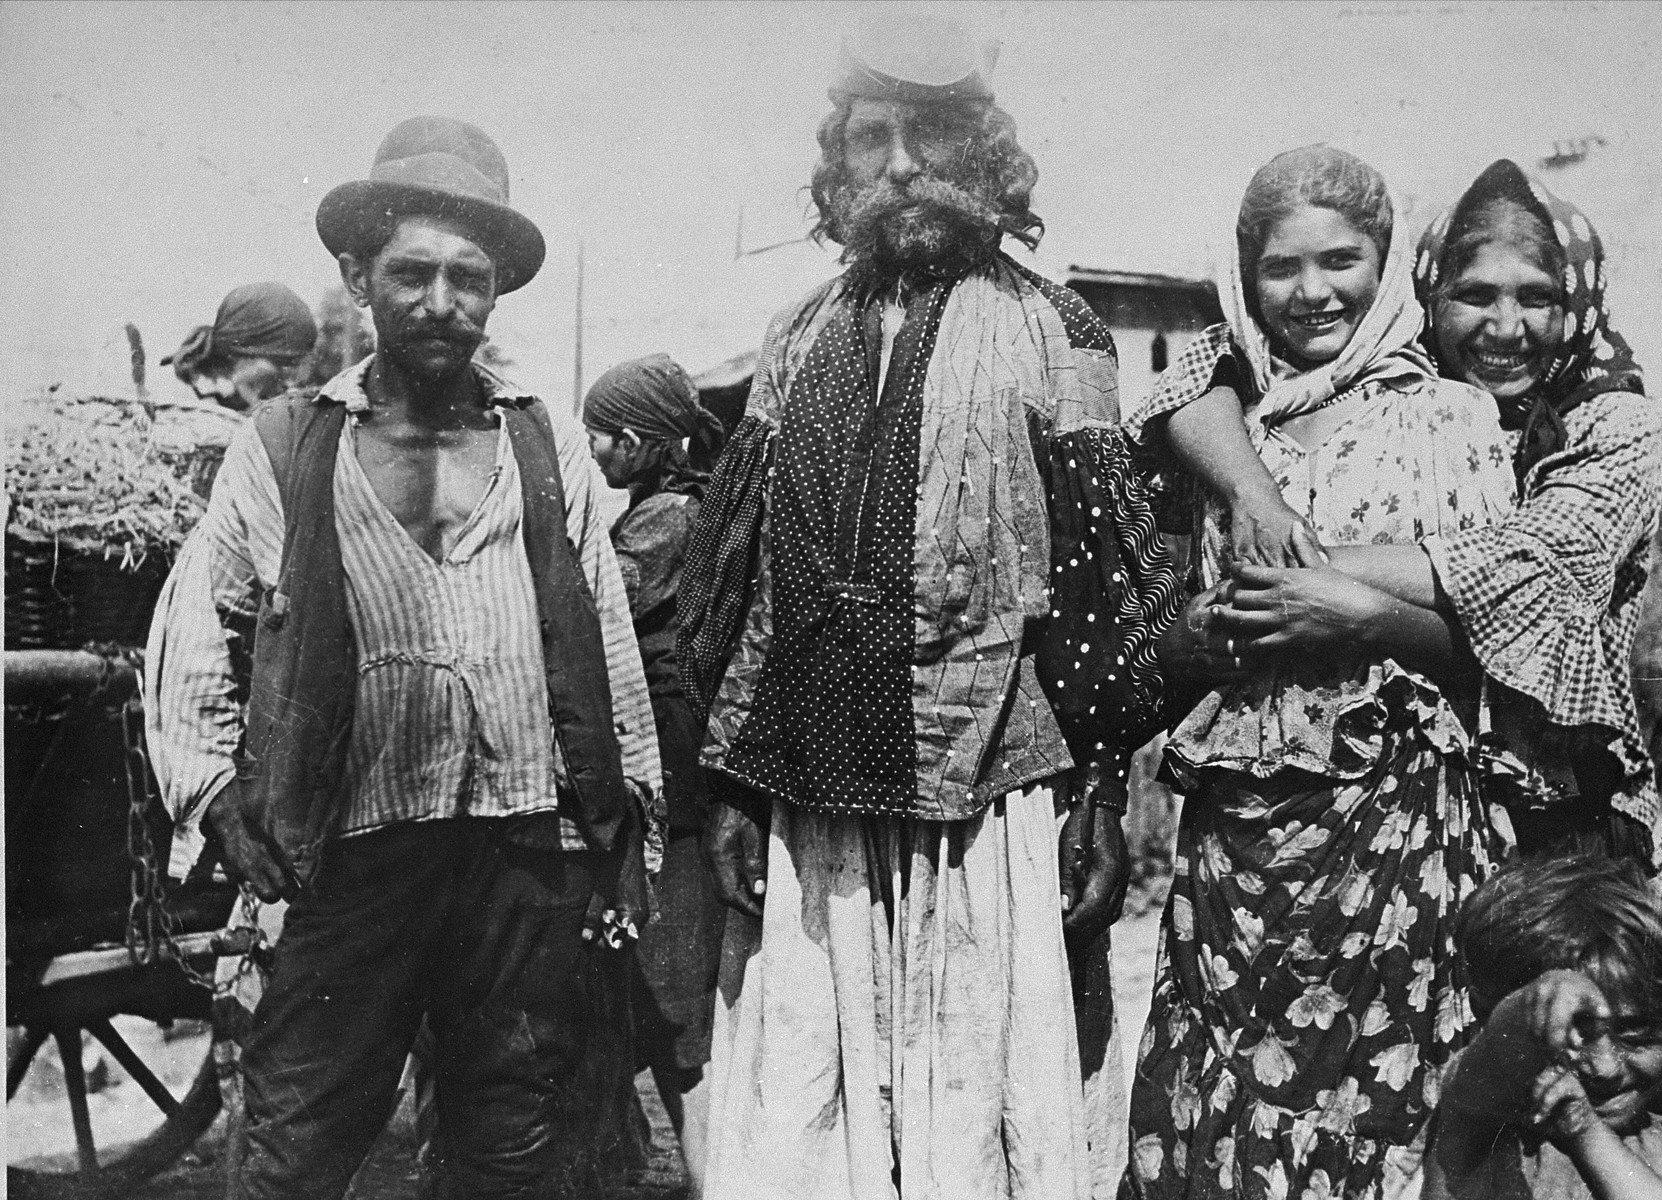 The chief (Vajda) of a Roma tribe iroma stands in the center, flanked by a man and two women.